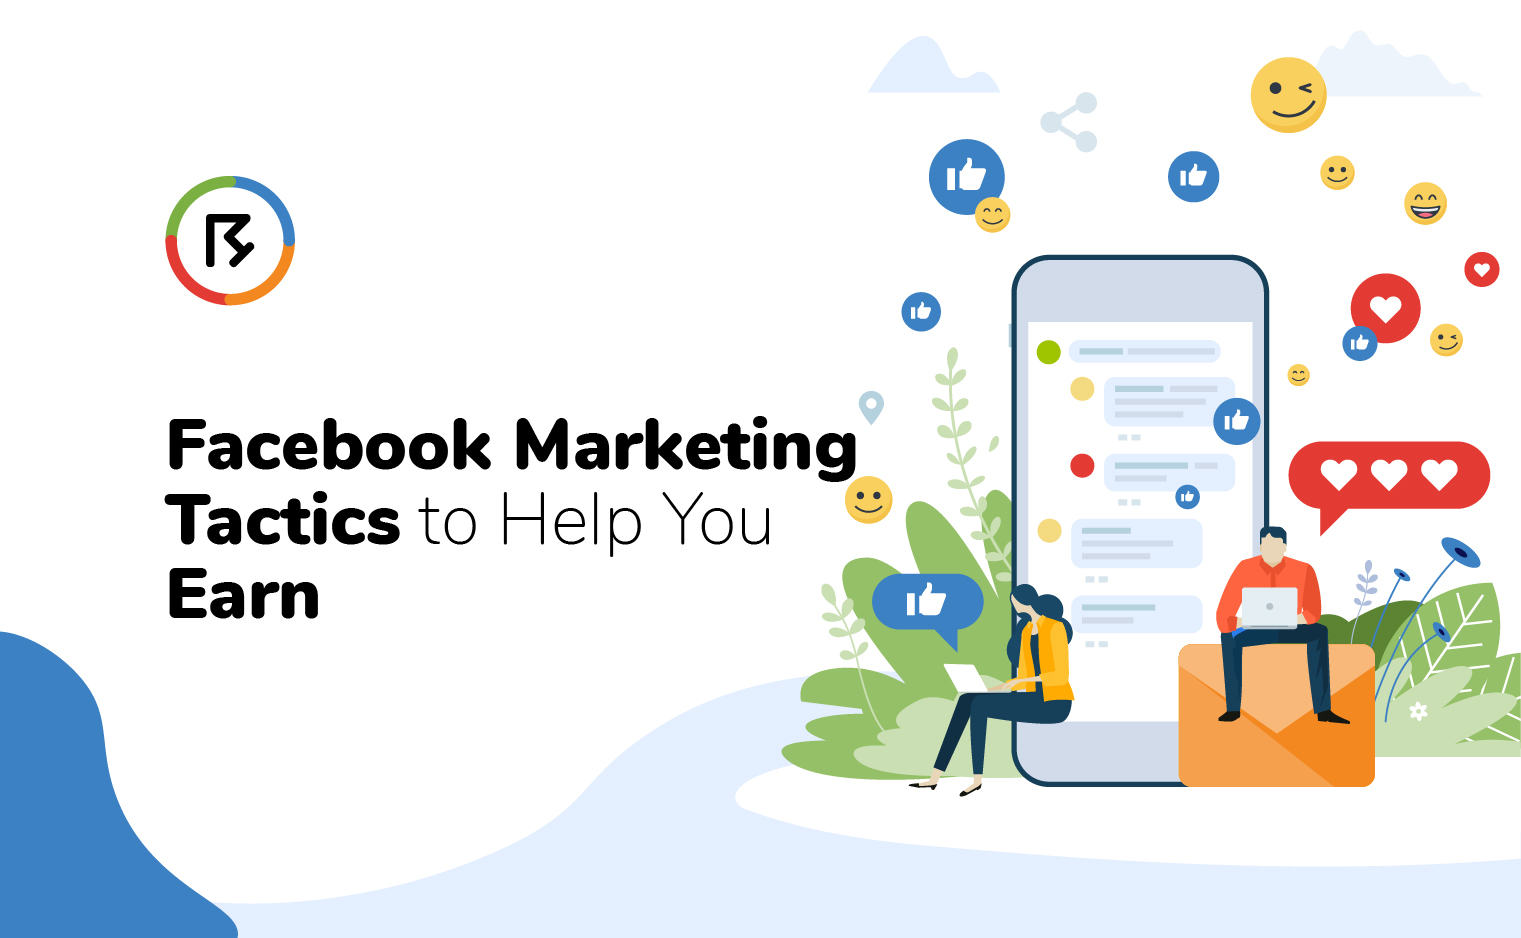 Facebook Marketing Tactics to Help You Earn